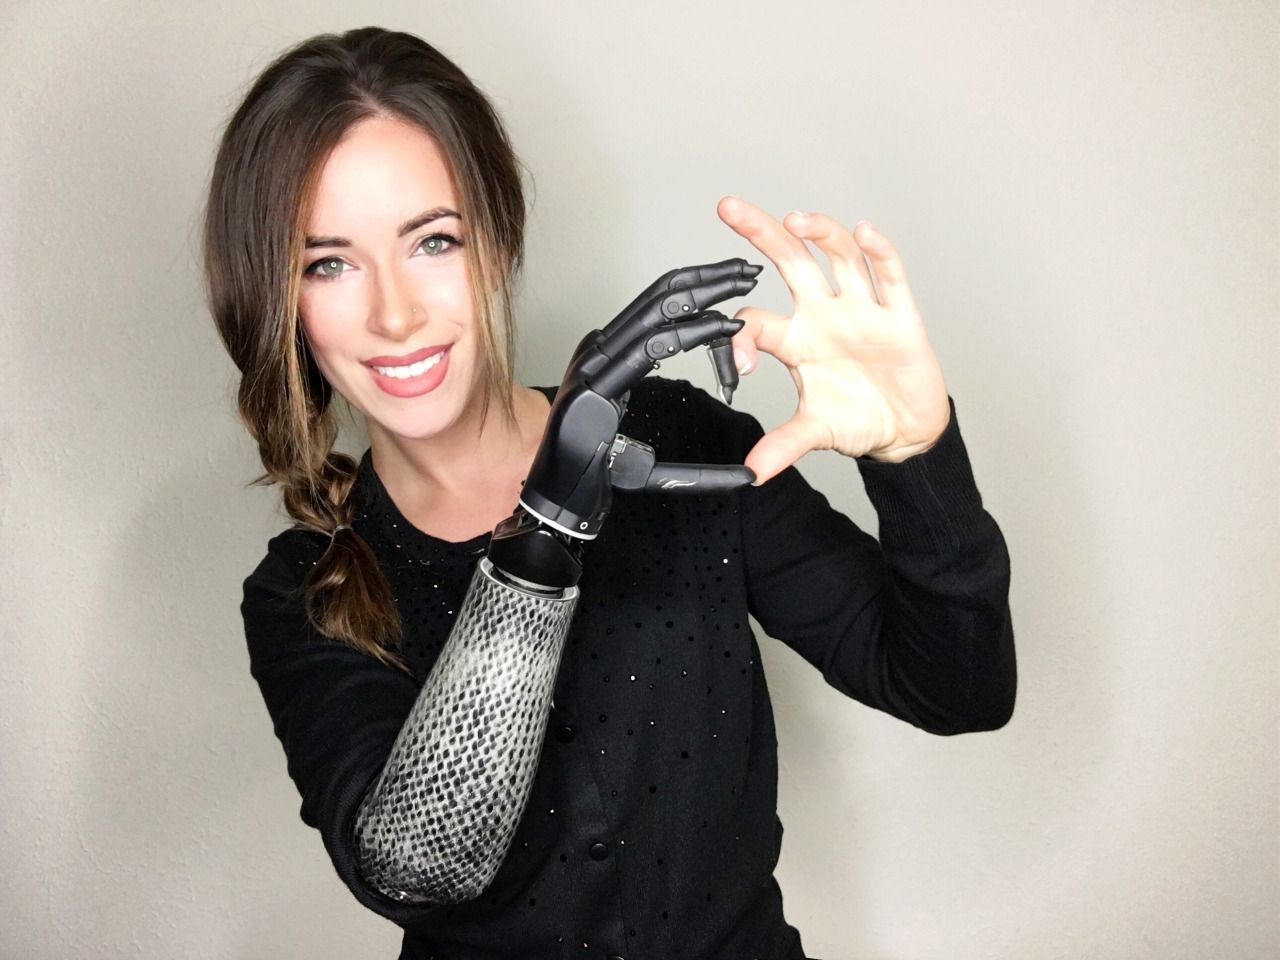 The Bionic Model: Model with prosthetic arm takes runway